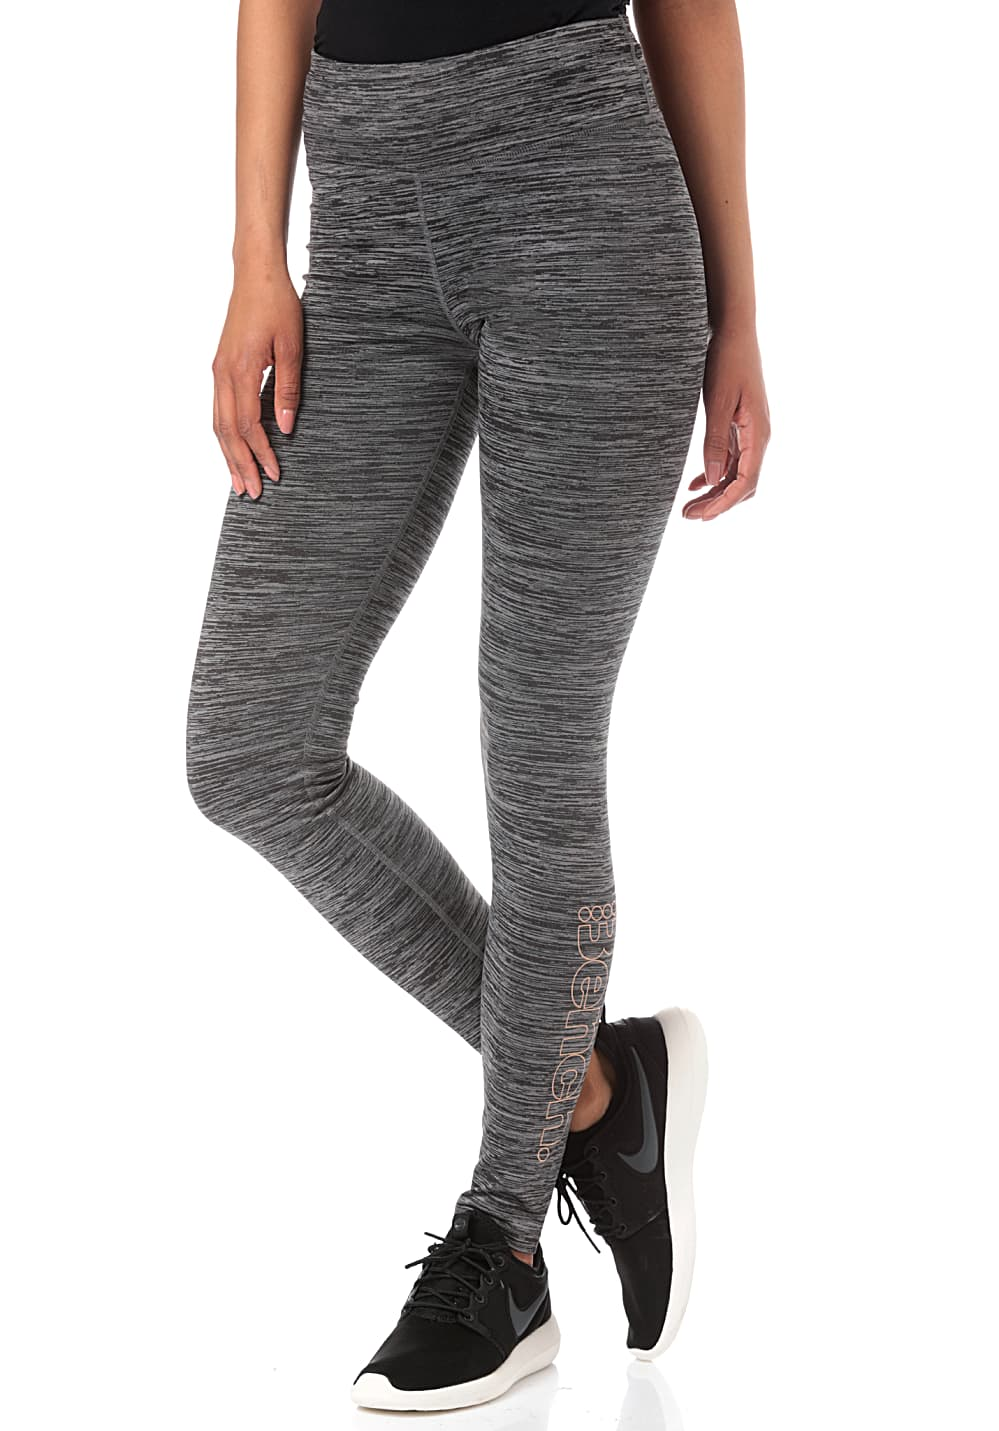 Hosen - Bench. Marl Baddah Leggings für Damen Grau  - Onlineshop Planet Sports